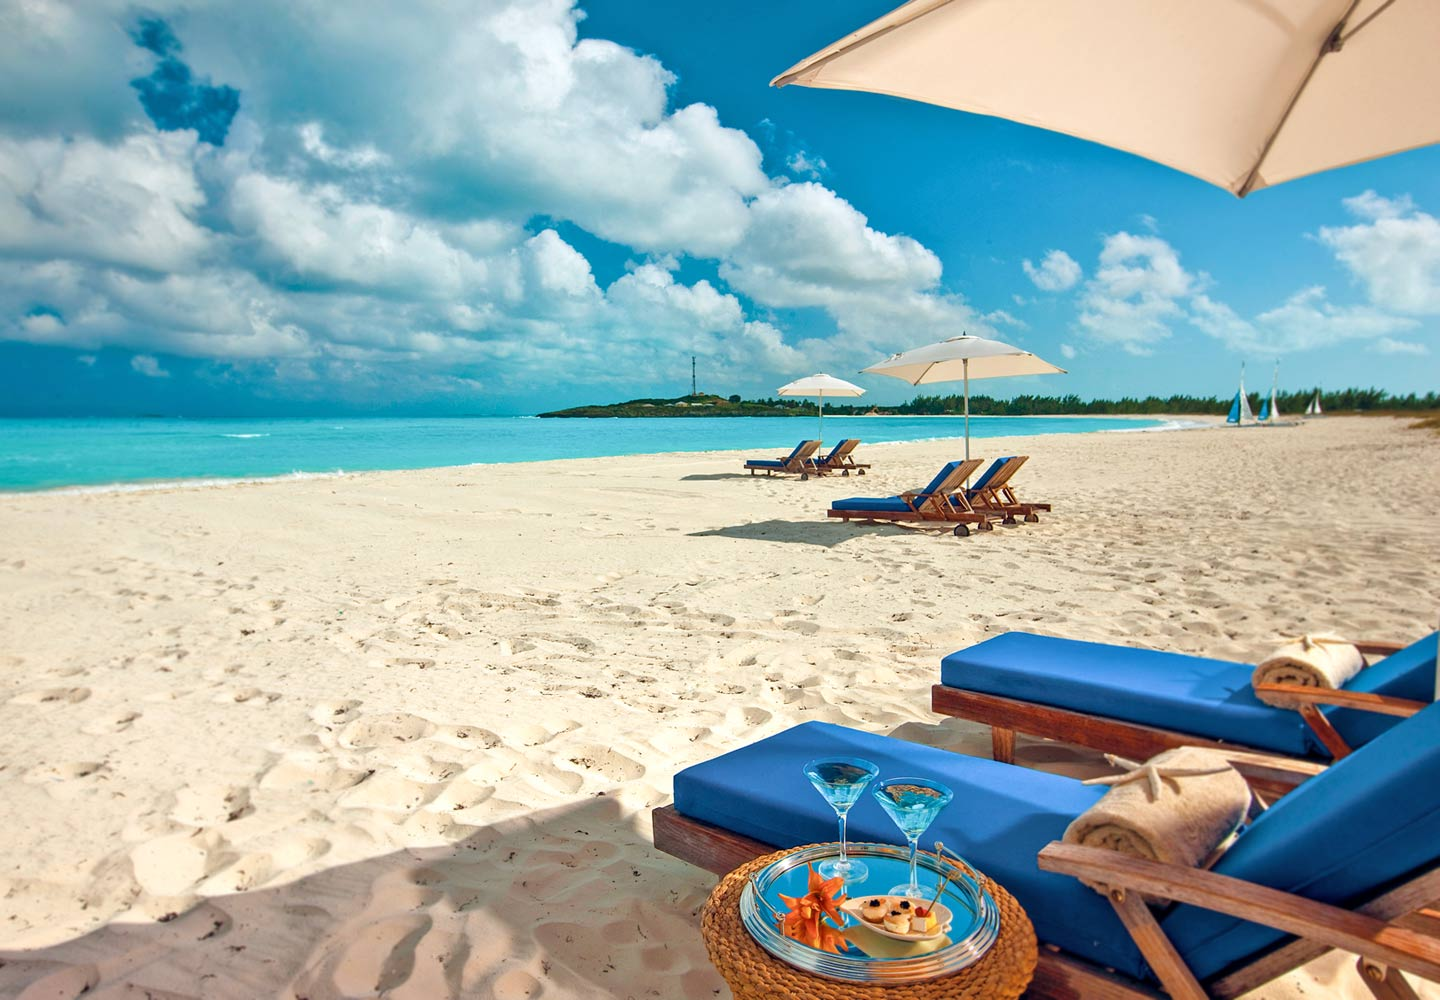 Sandals Emerald Bay - Great Exuma, Bahamas